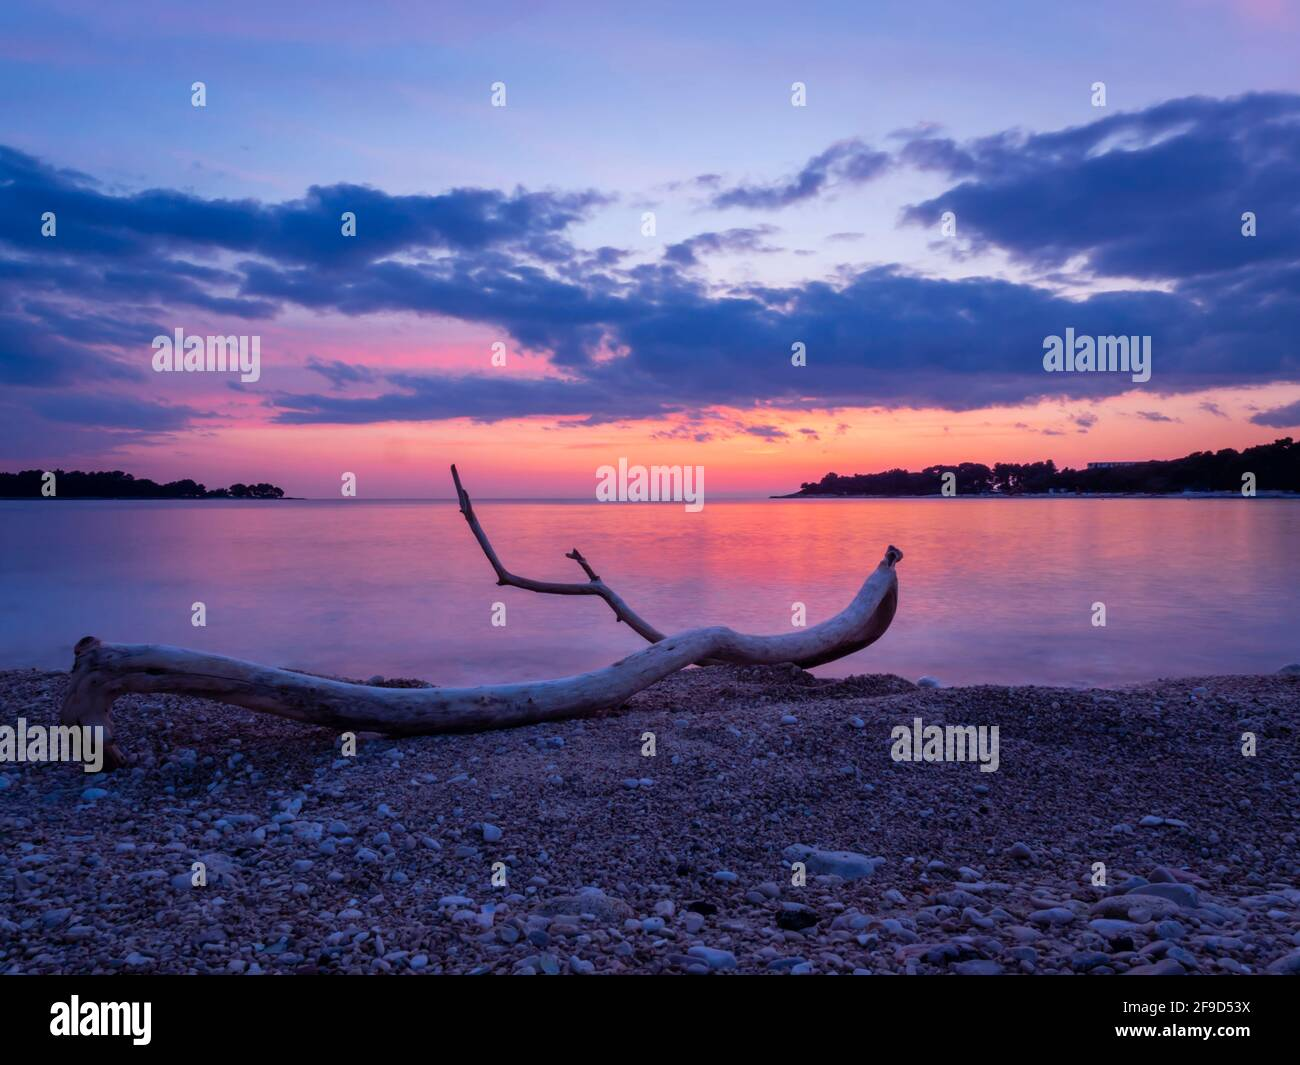 Dusk twilight gorgeous stunning idyllic pretty beautiful seaside beach evening tranquility wooden wood alluvion dried tree trunk branch Stock Photo